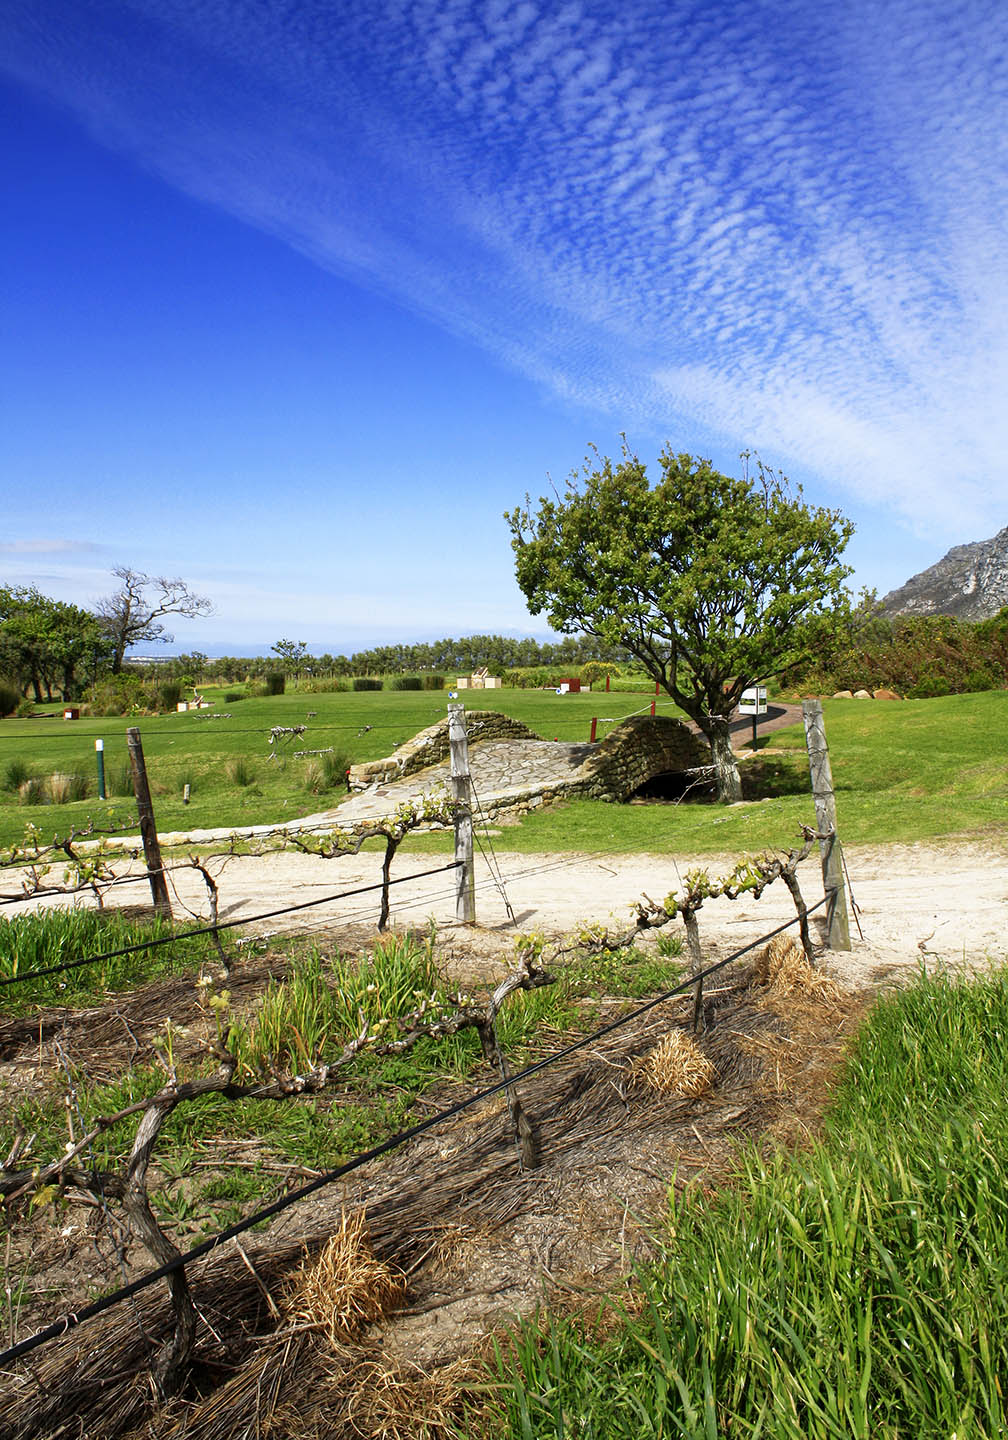 Golf course at Steenberg Mountains in the Constantia Valley